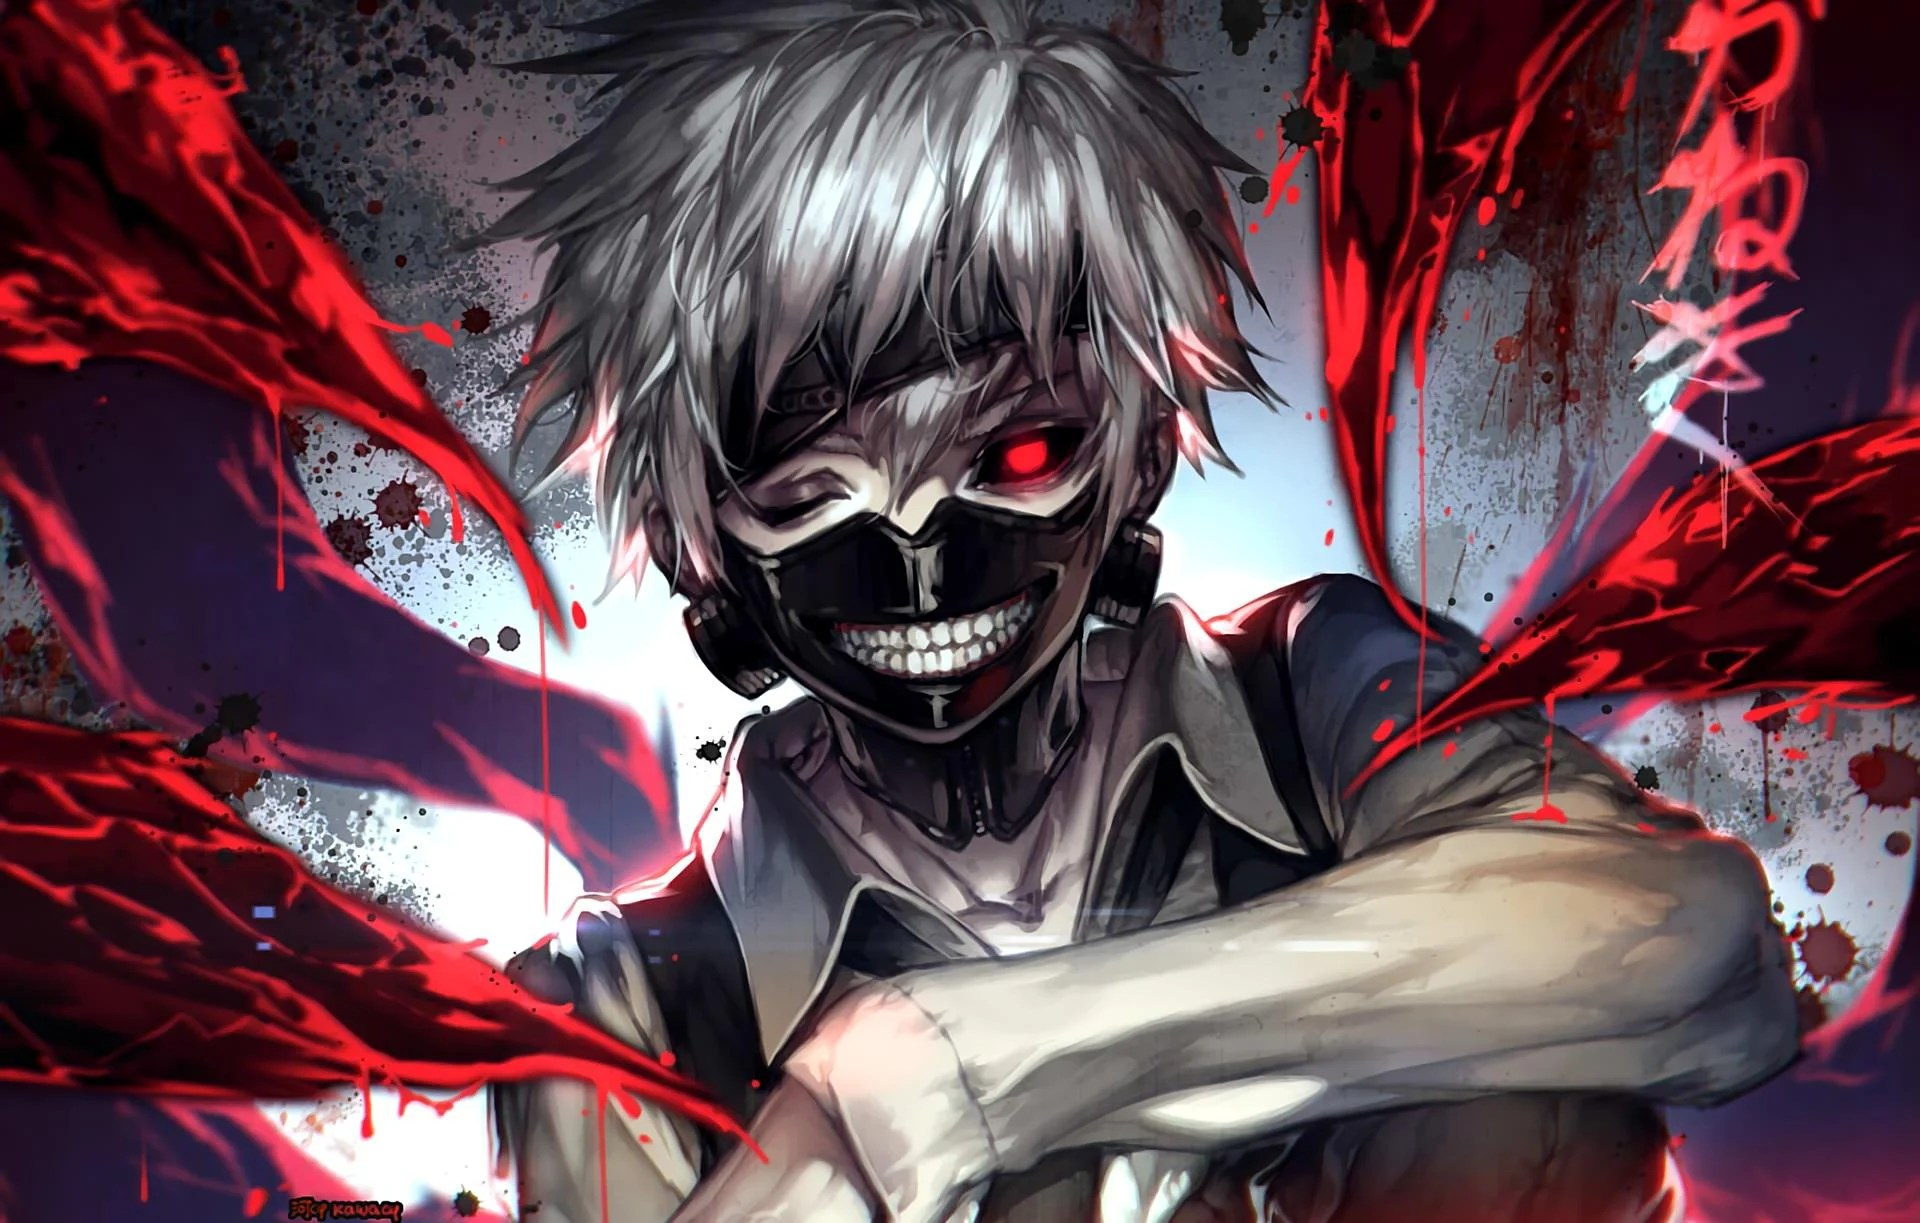 49 Beautiful Anime Wallpapers In High Resolution Templatefor